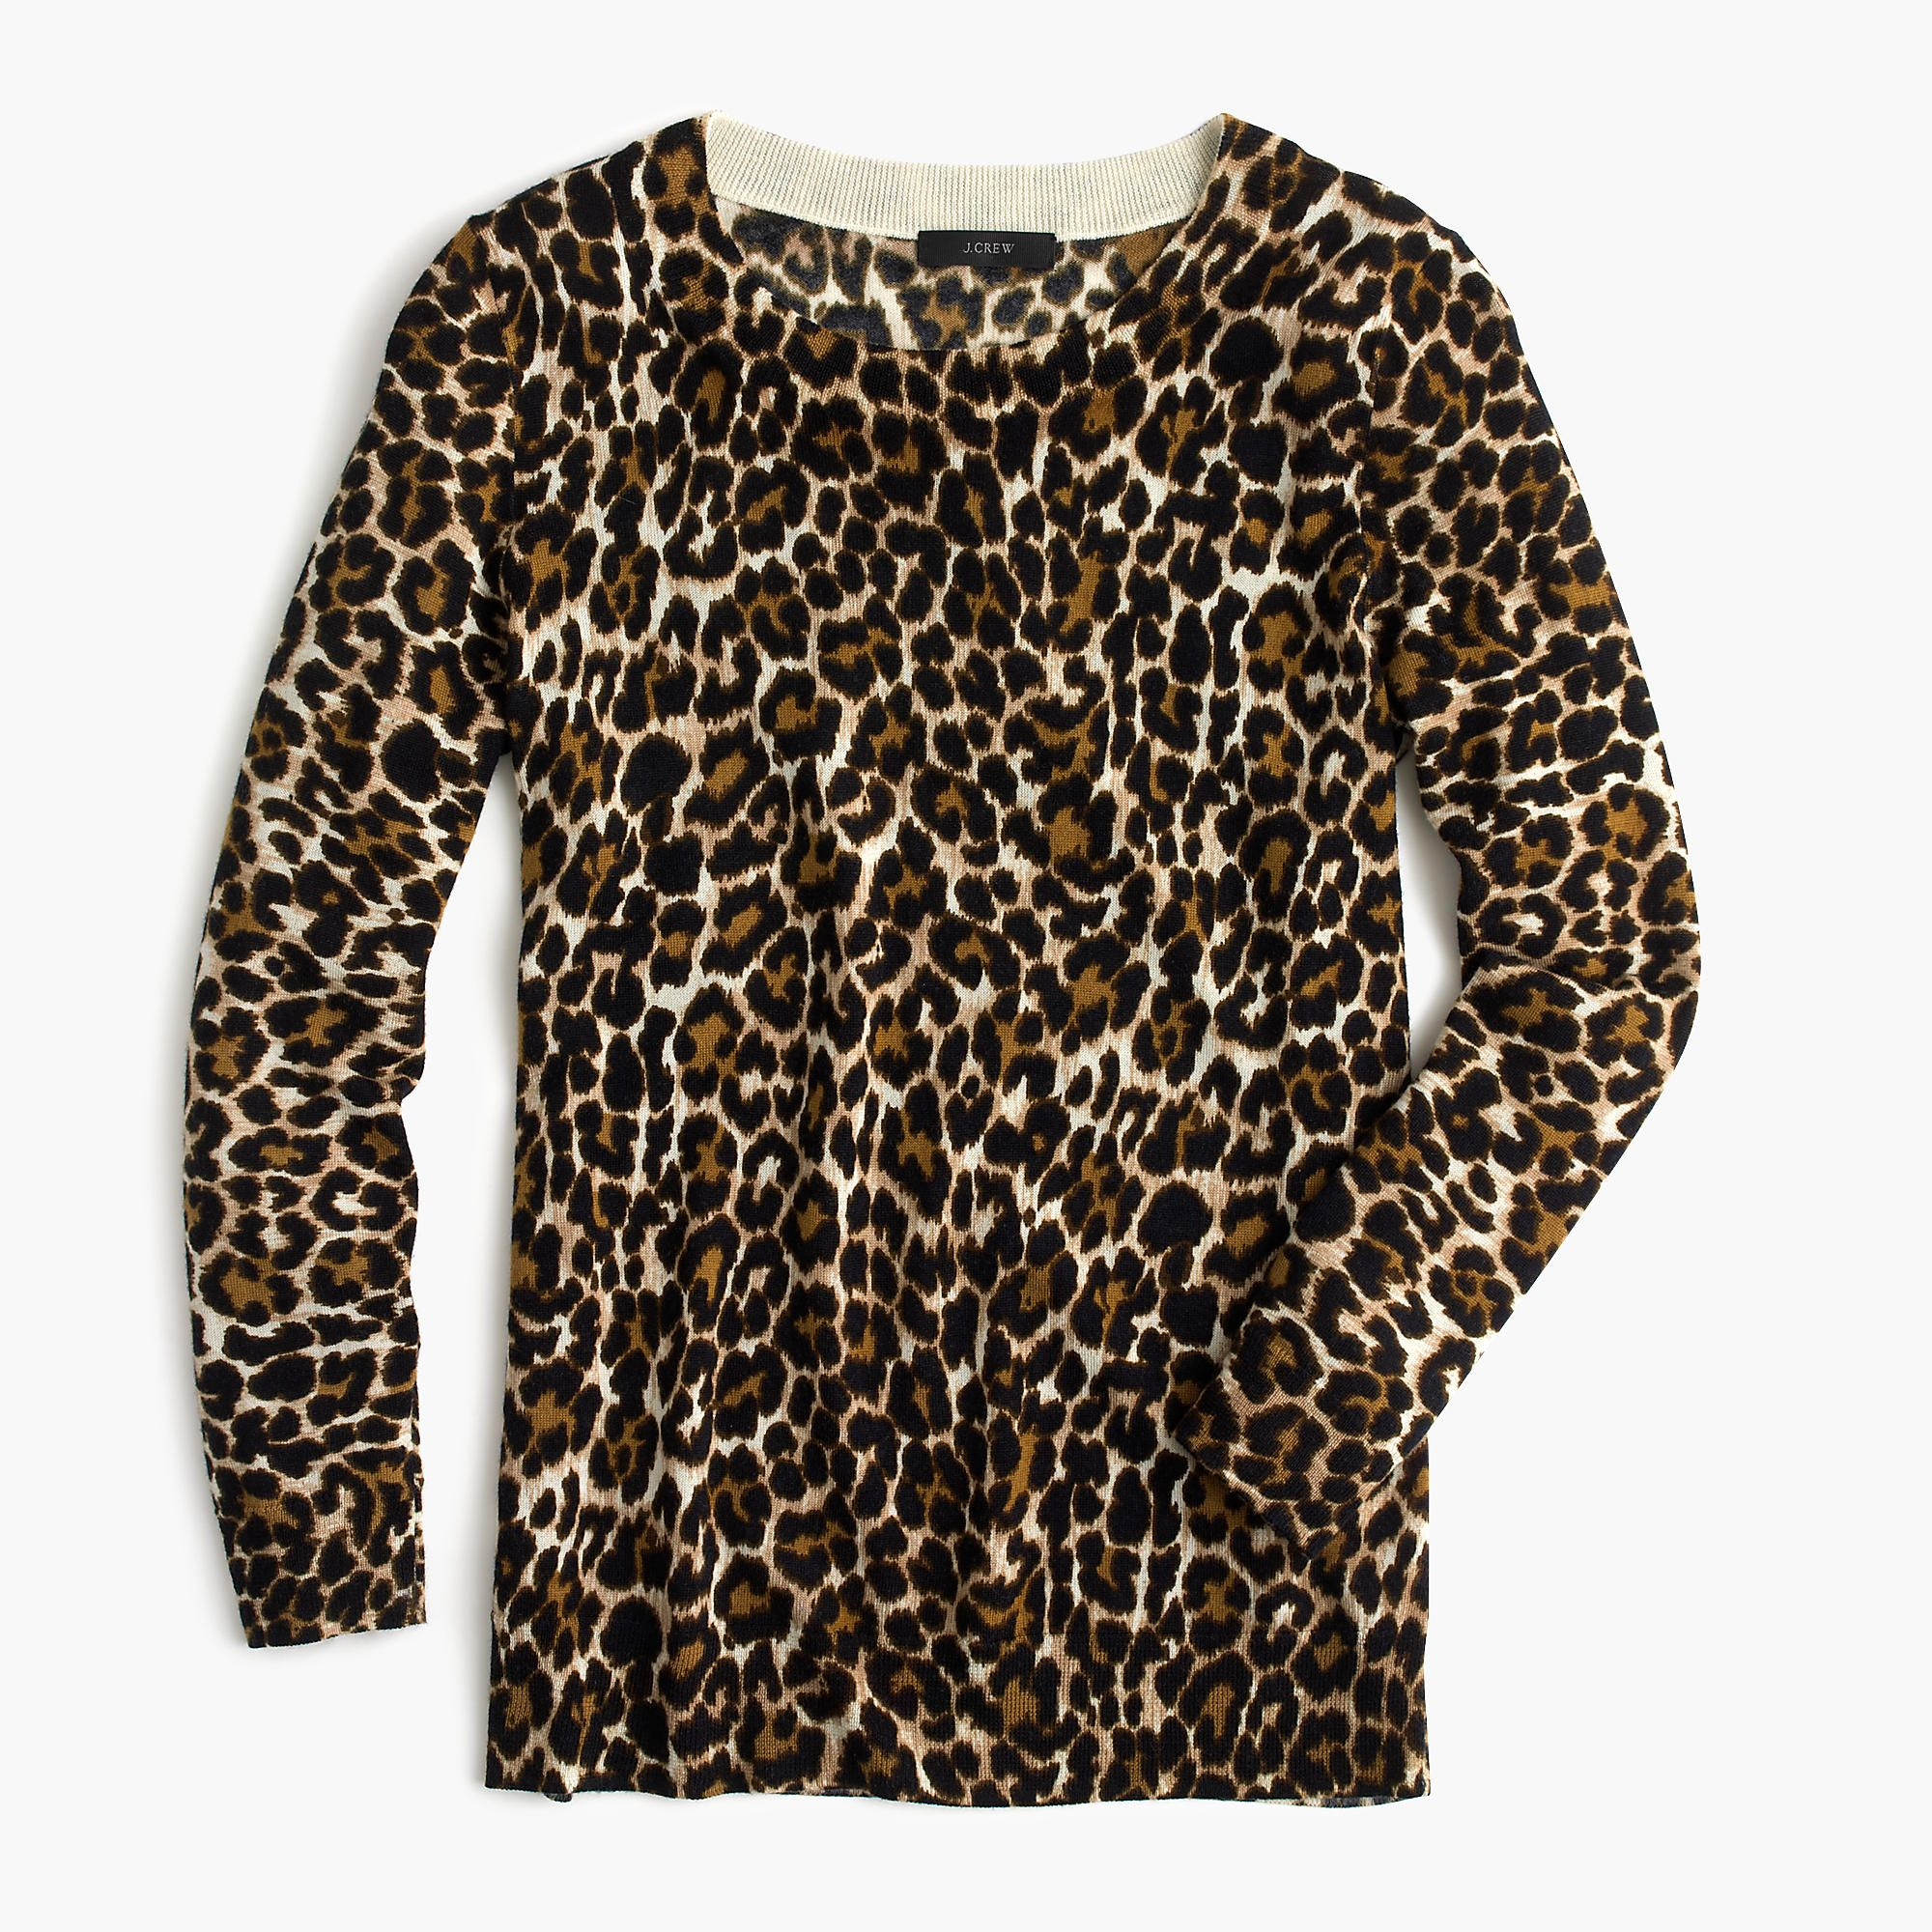 J.Crew - Tippi sweater in leopard print | stuff and things ...